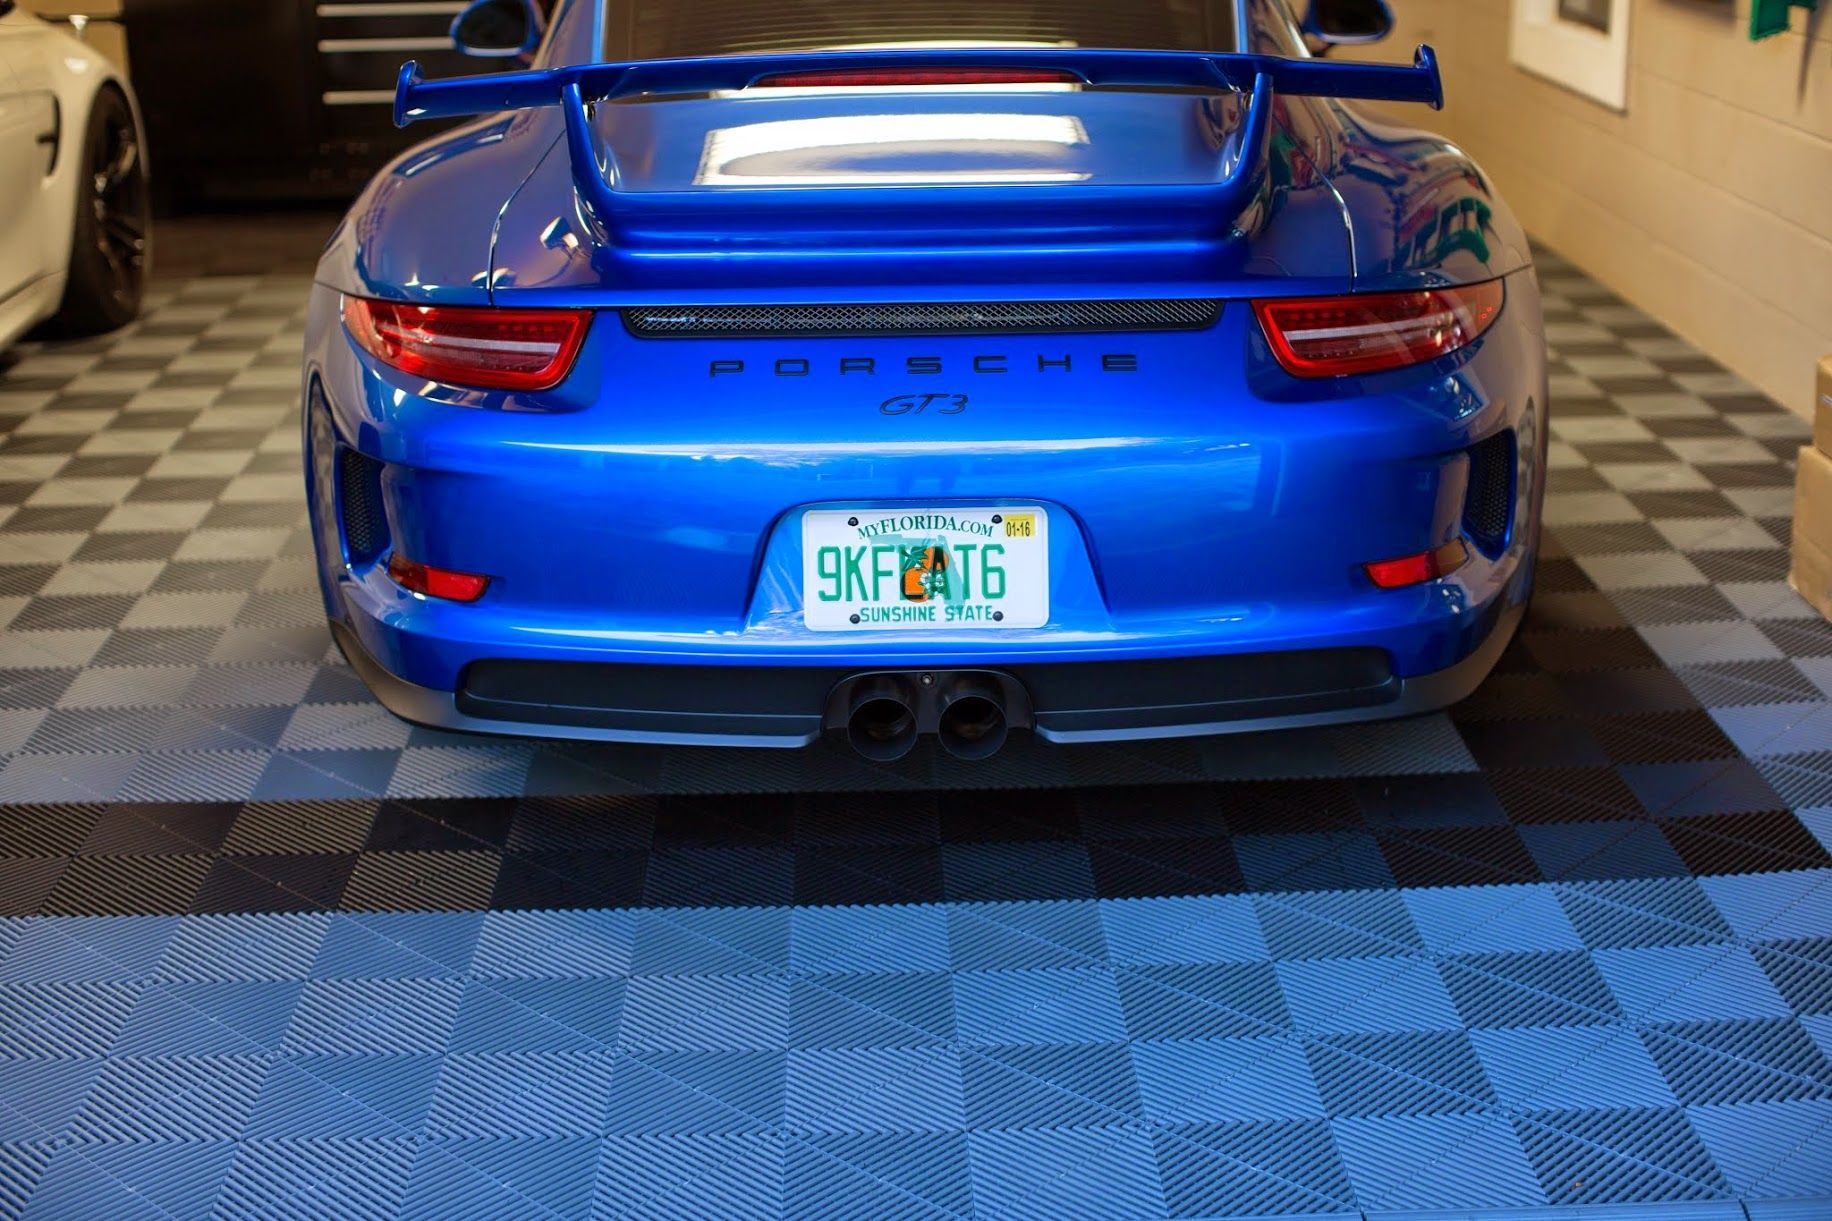 The Gt3 Gets A Personalized Plate Obsessed Garage Store